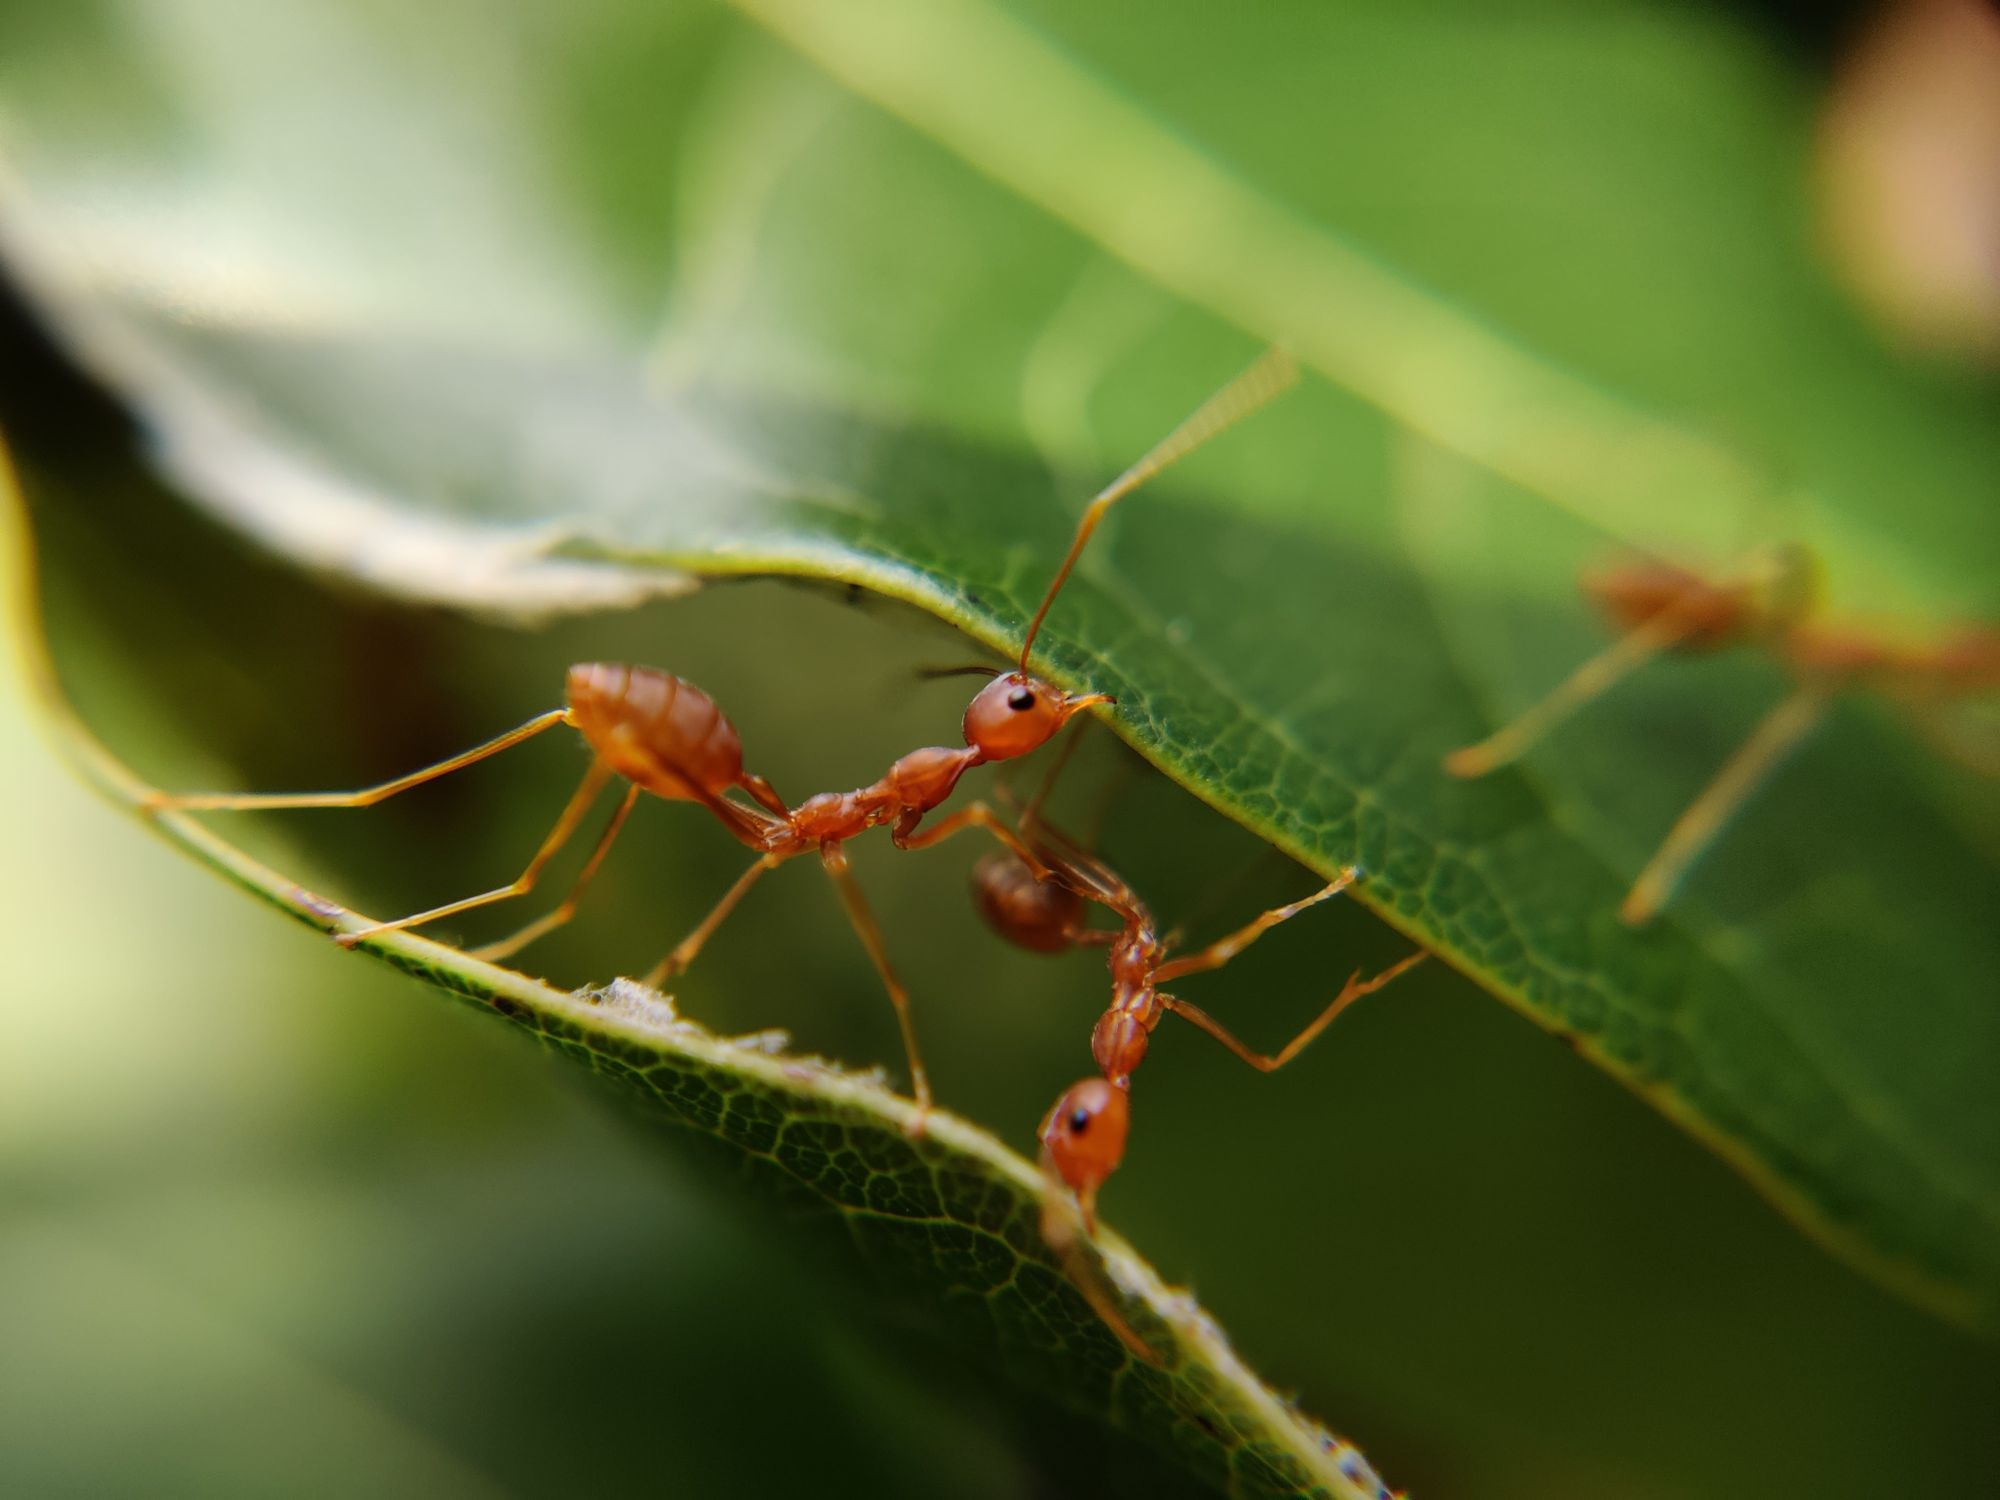 Ants fighting for survival